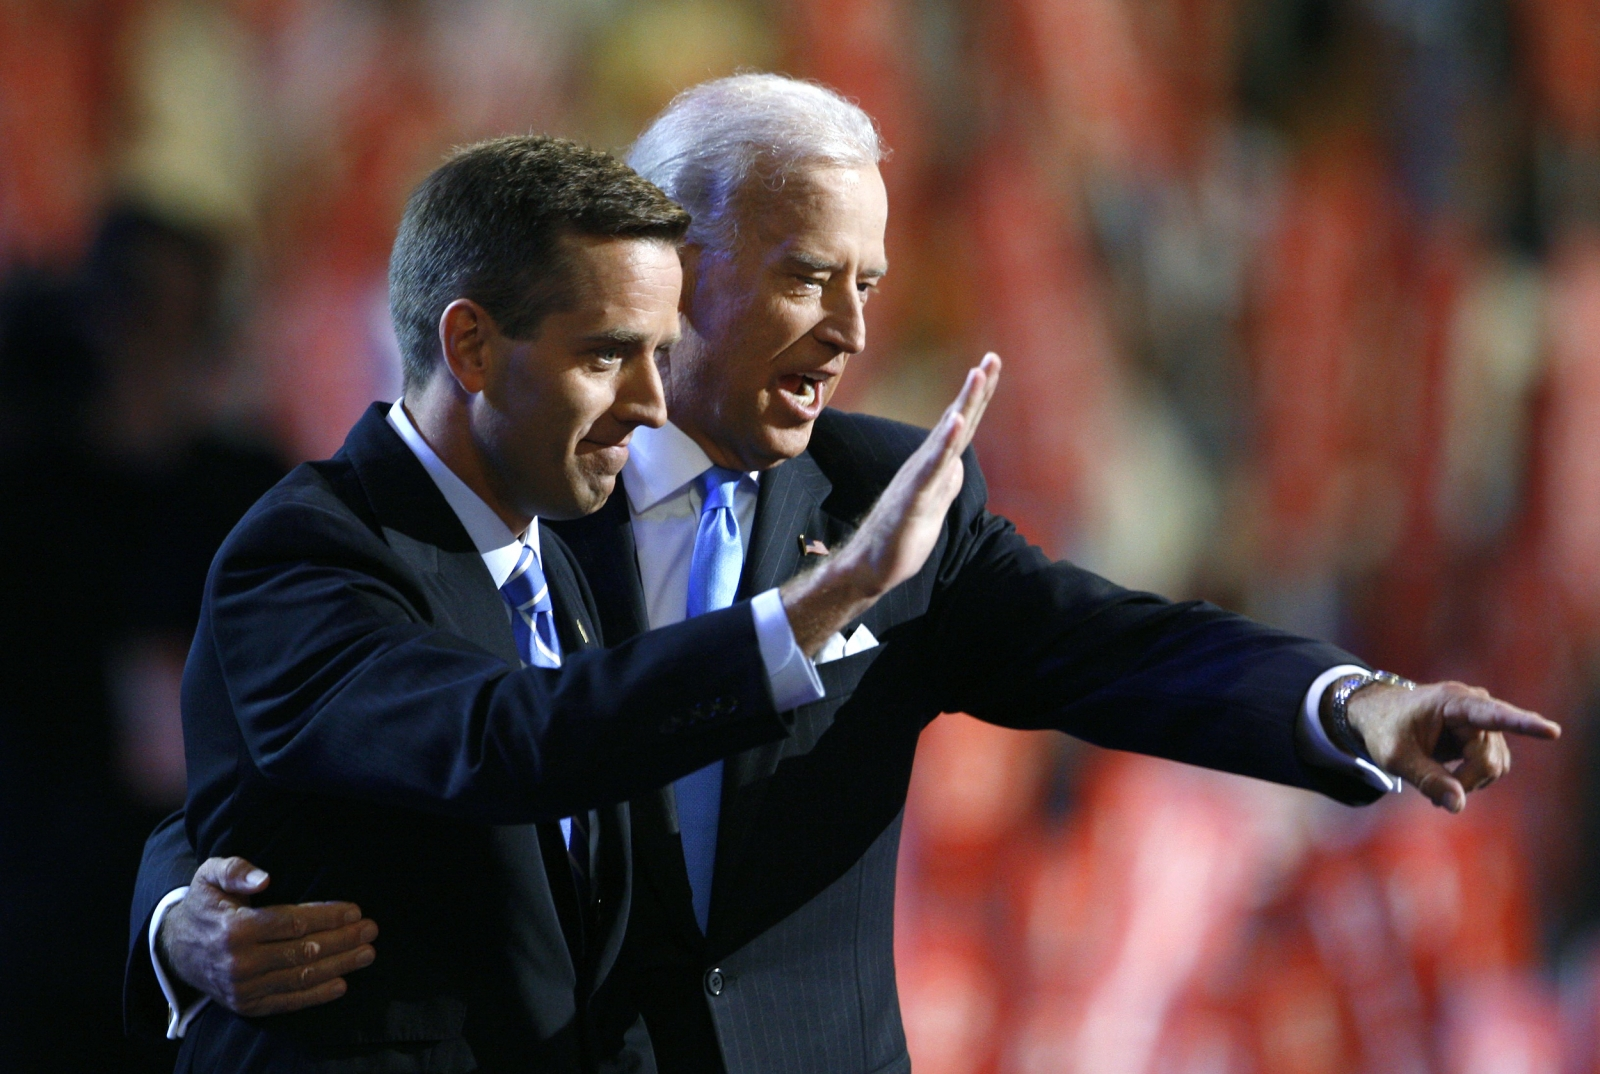 Beau Biden dies of cancer